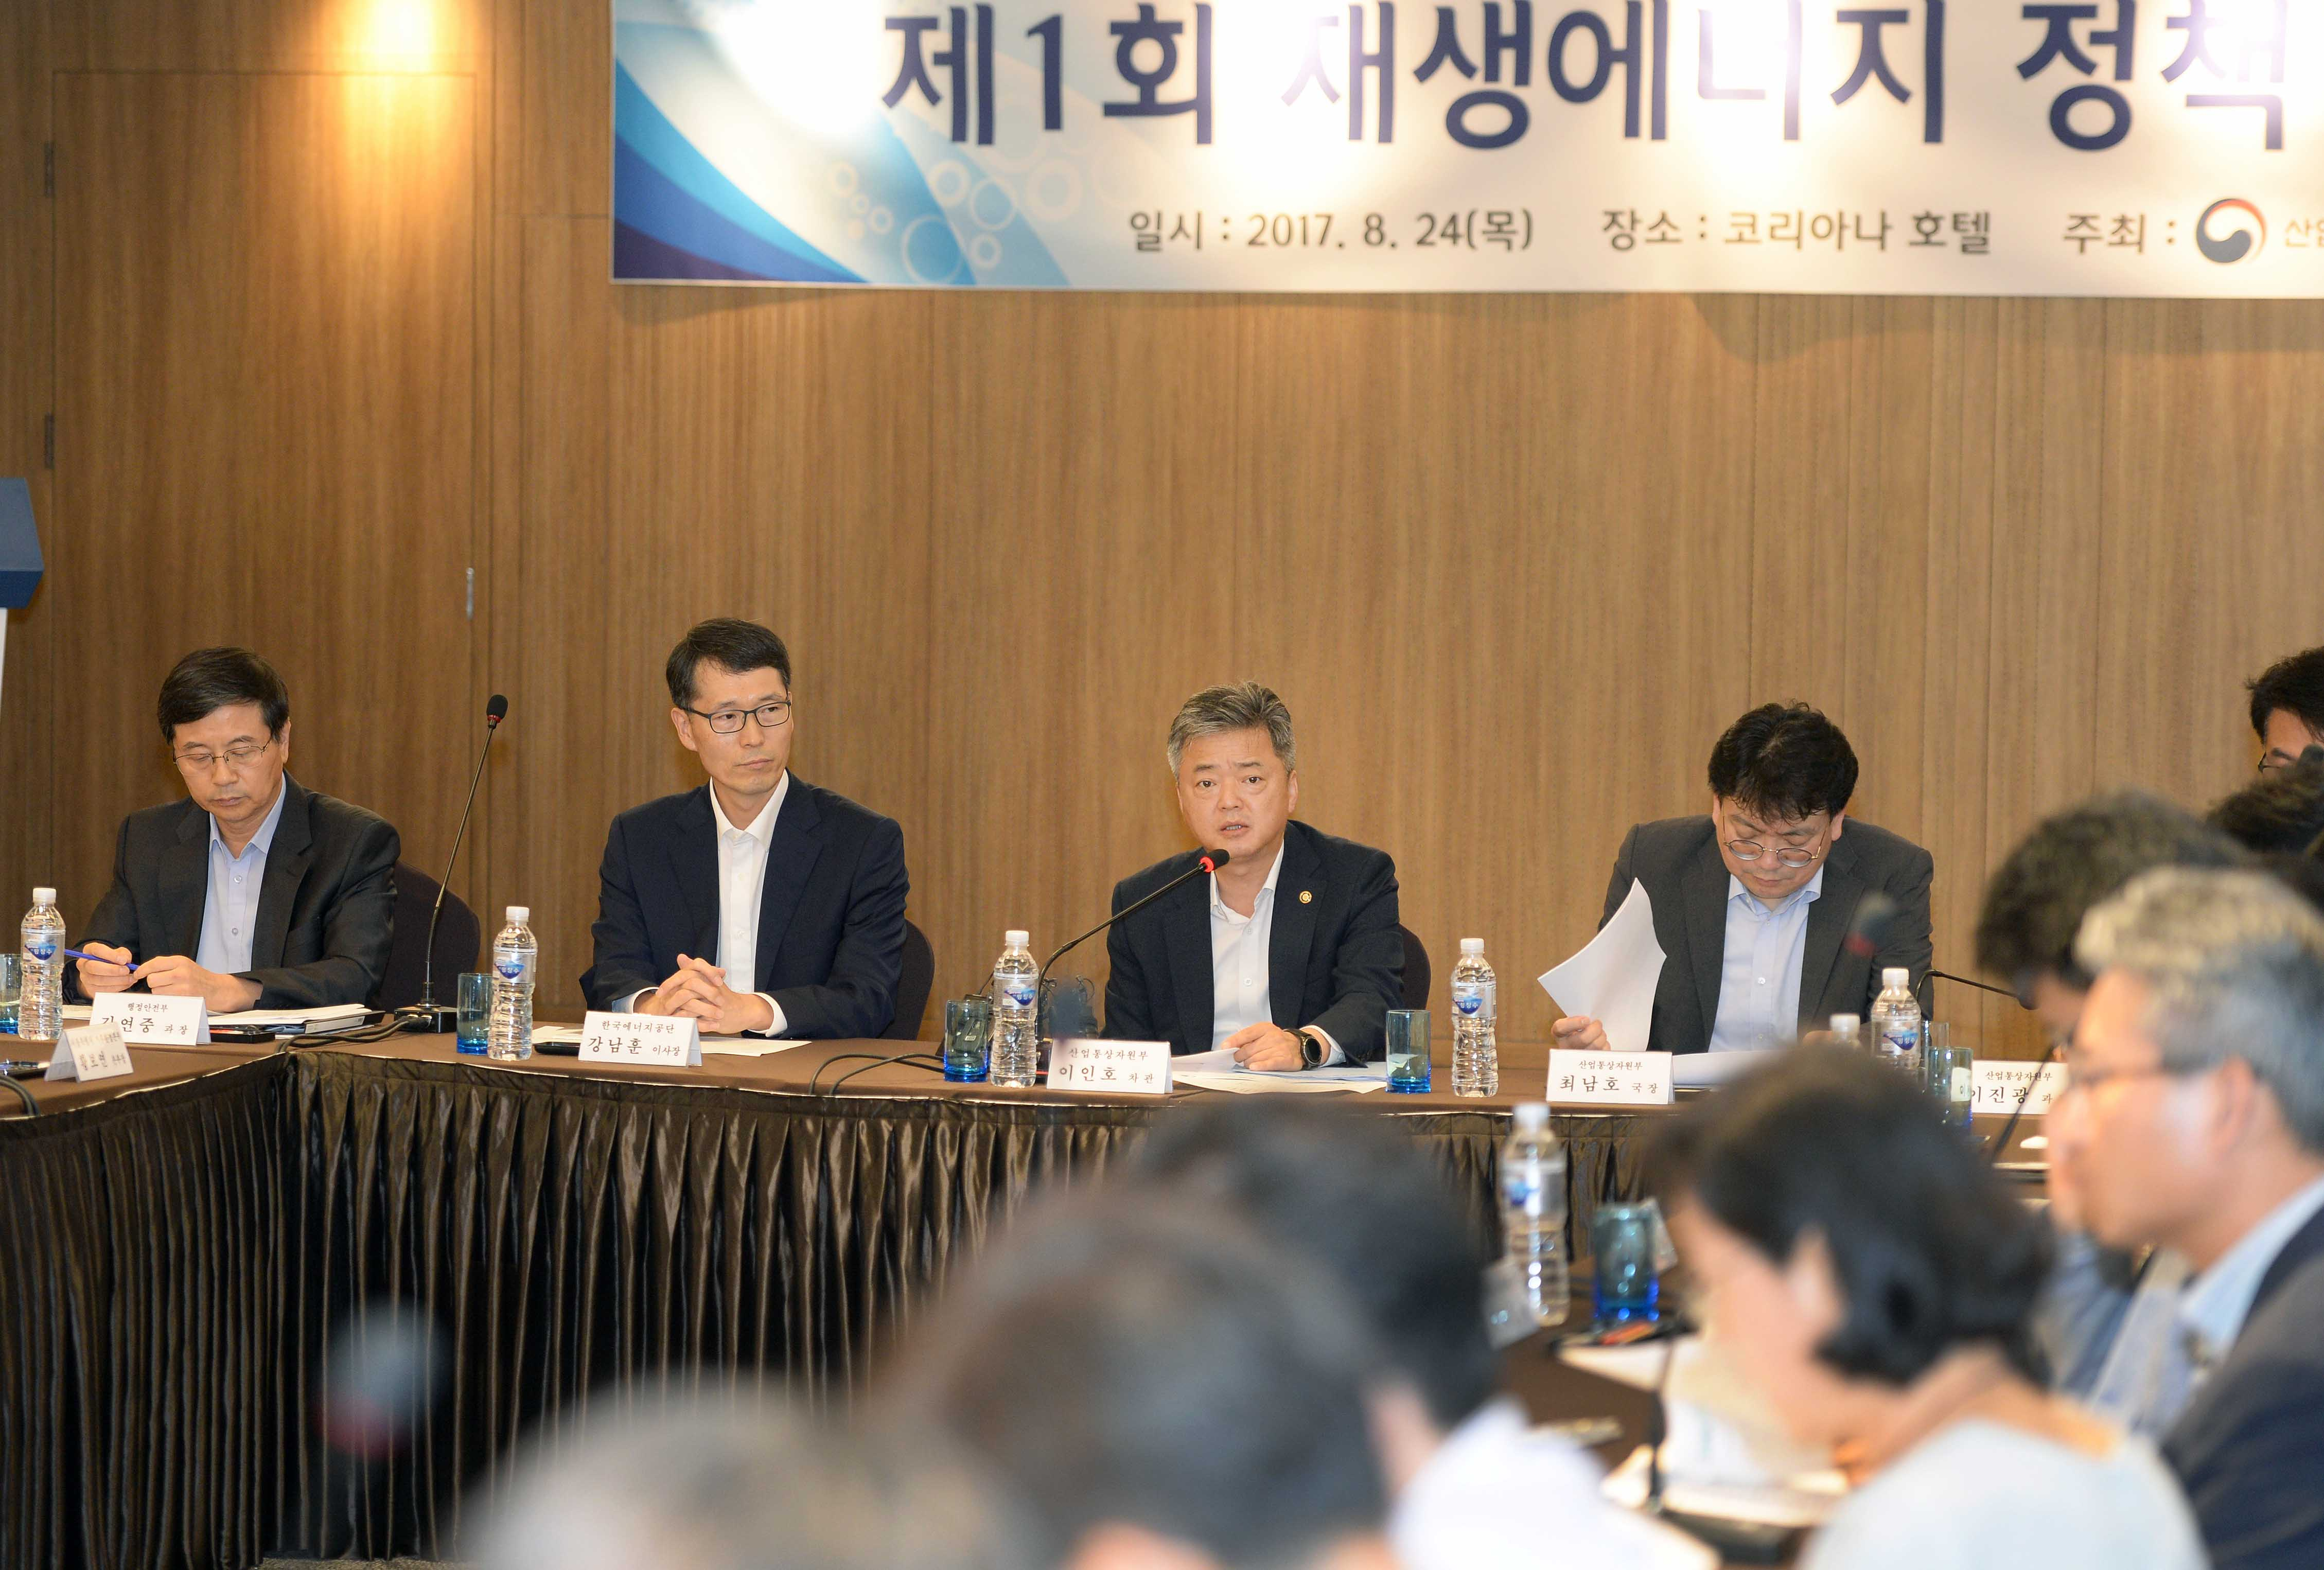 Vice Minister Lee hosts 1st consultative meeting on renewable energy policies